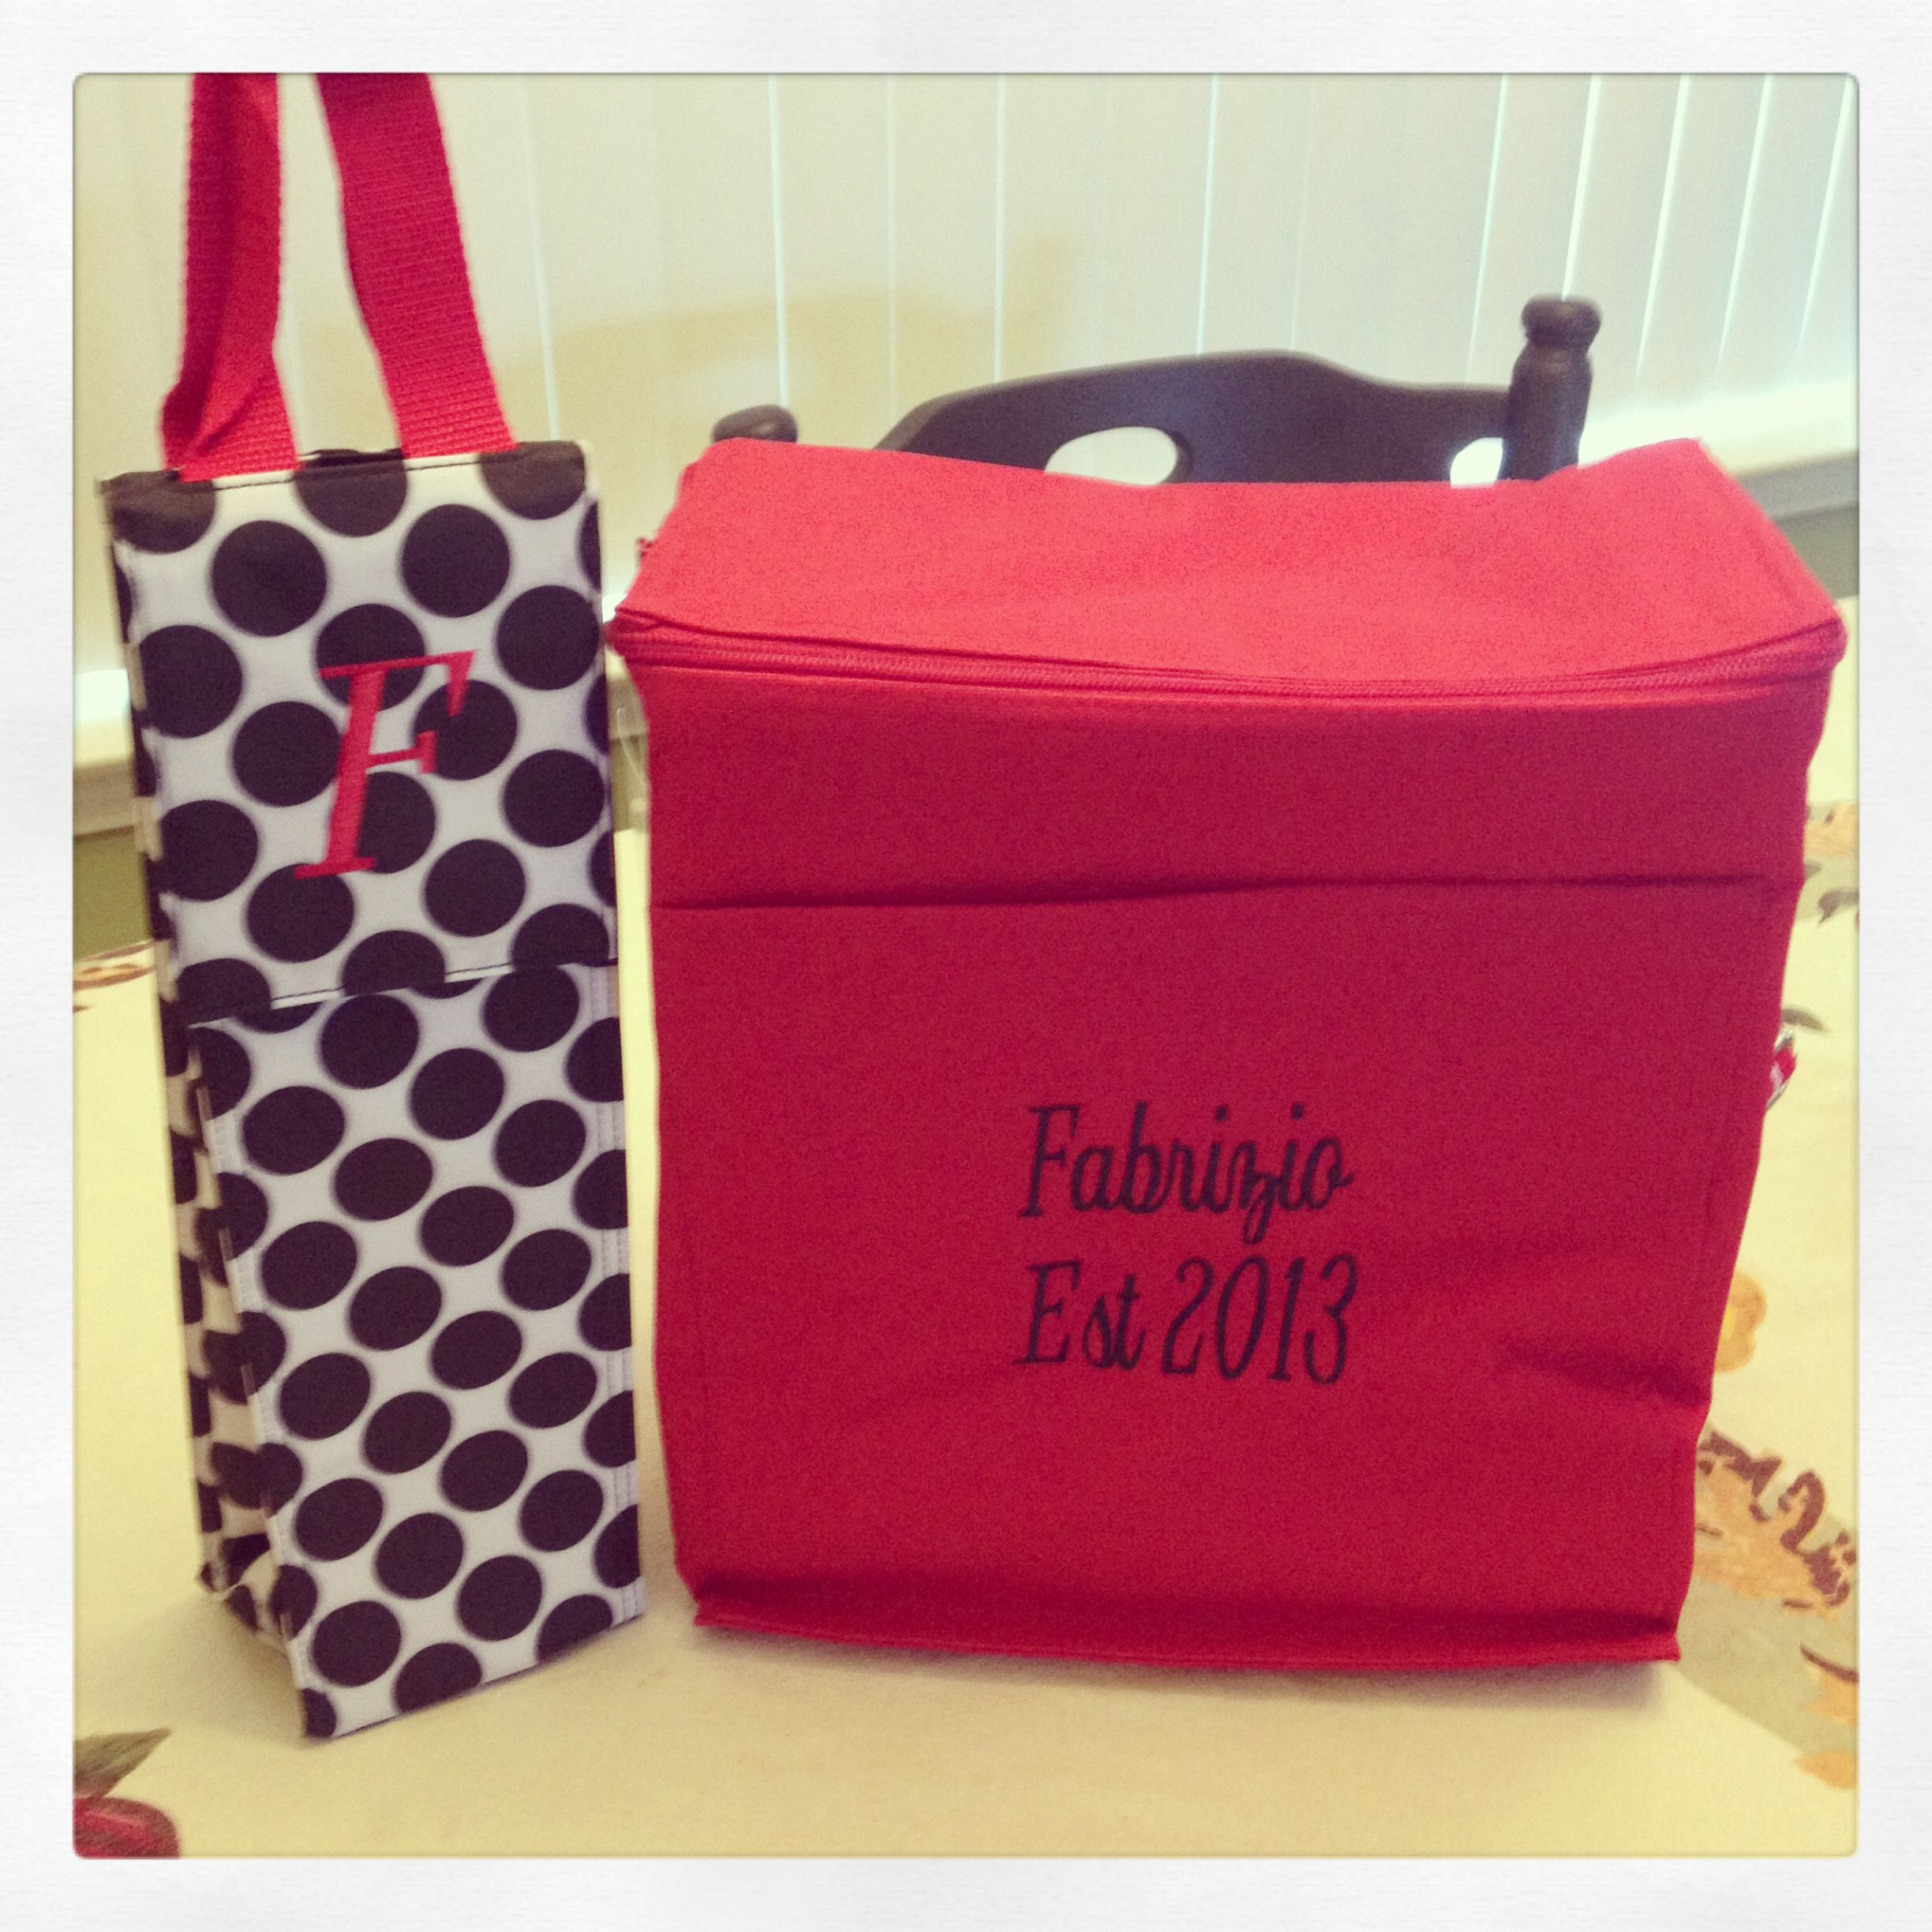 Thirty One Wedding Gift Ideas: Great Wedding Gift From Thirty-One! Picnic Thermal